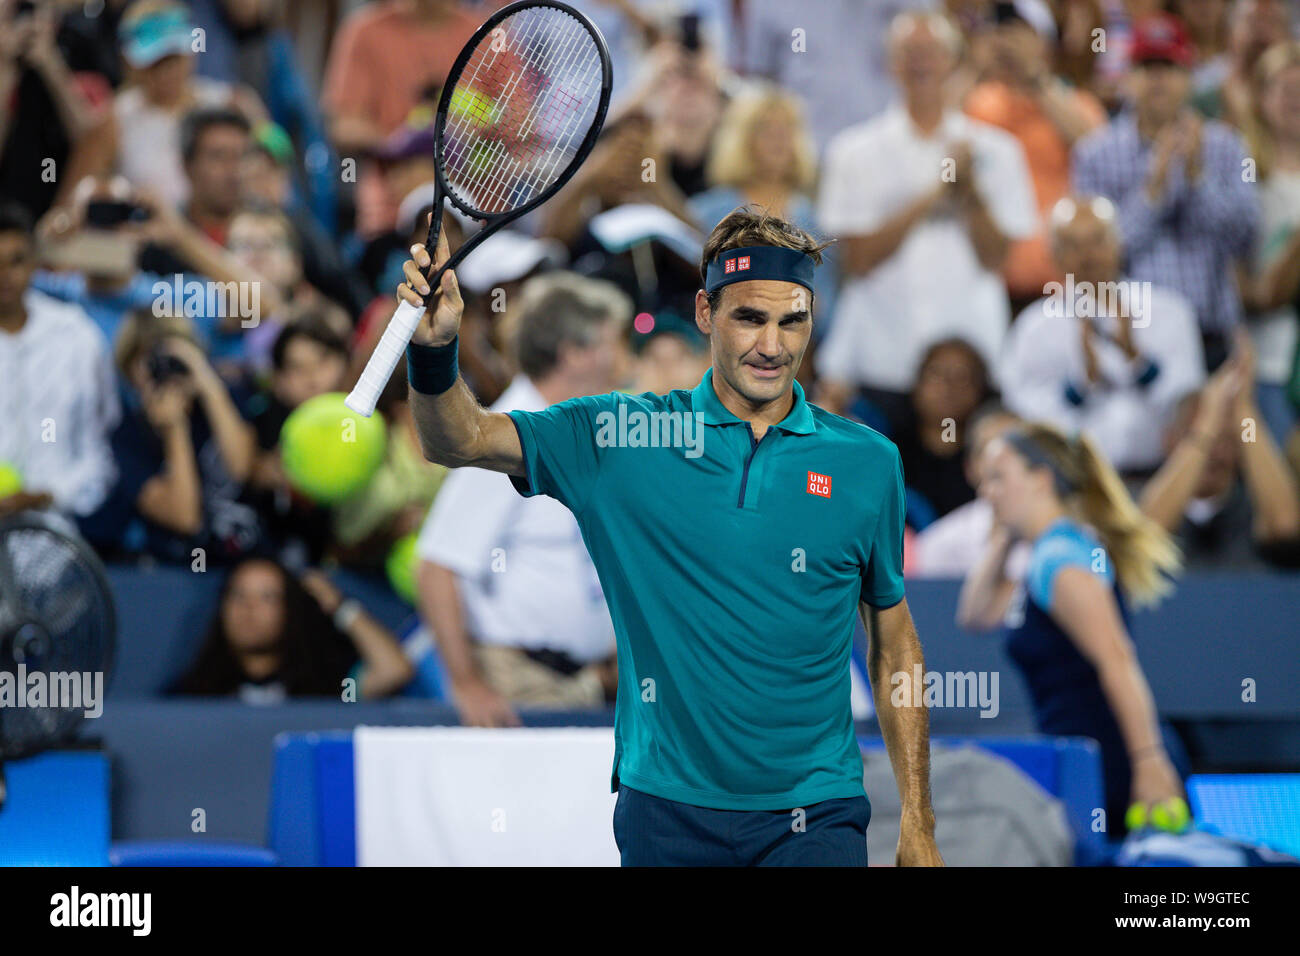 Mason, Ohio, USA. 13th Aug, 2019. Roger Federer, (SUI) waves to the crowd after winning his match at Tuesday's round of the Western and Southern Open at the Lindner Family Tennis Center, Mason, Oh. Credit: Scott Stuart/ZUMA Wire/Alamy Live News Stock Photo